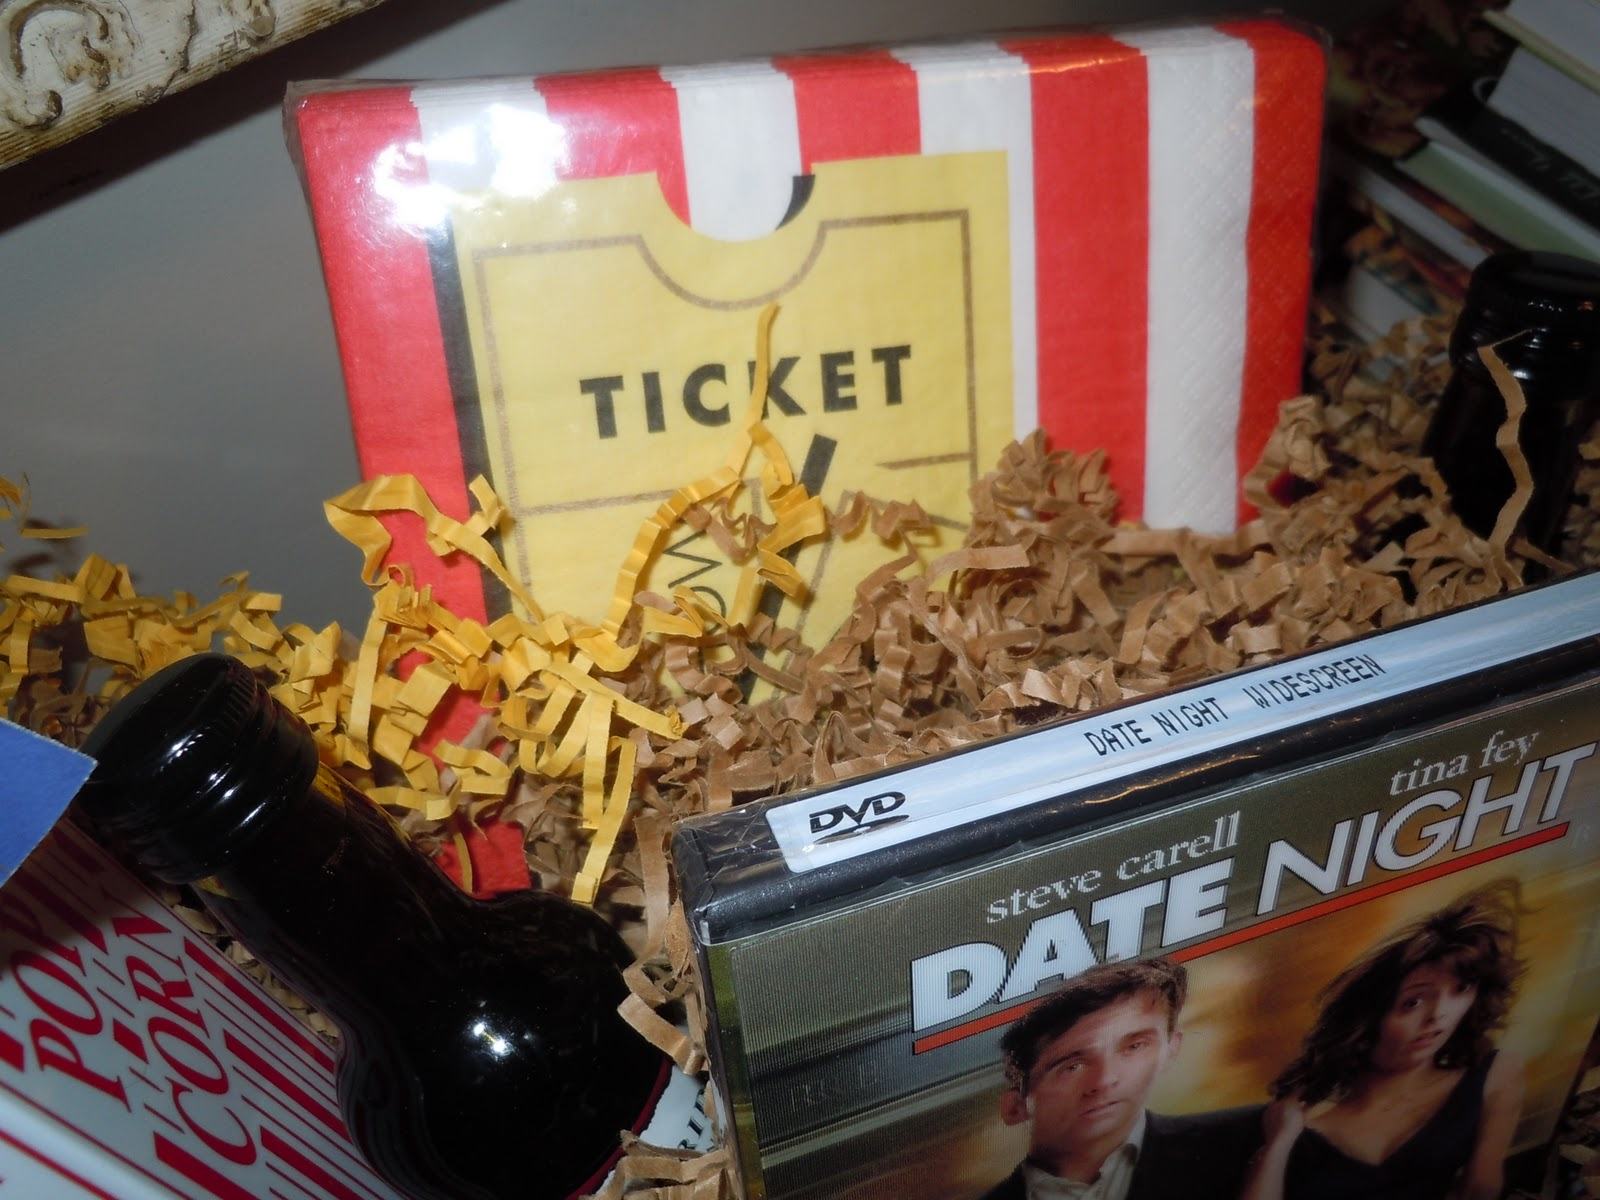 I Do Declare Gift Idea Date Night Gift Basket